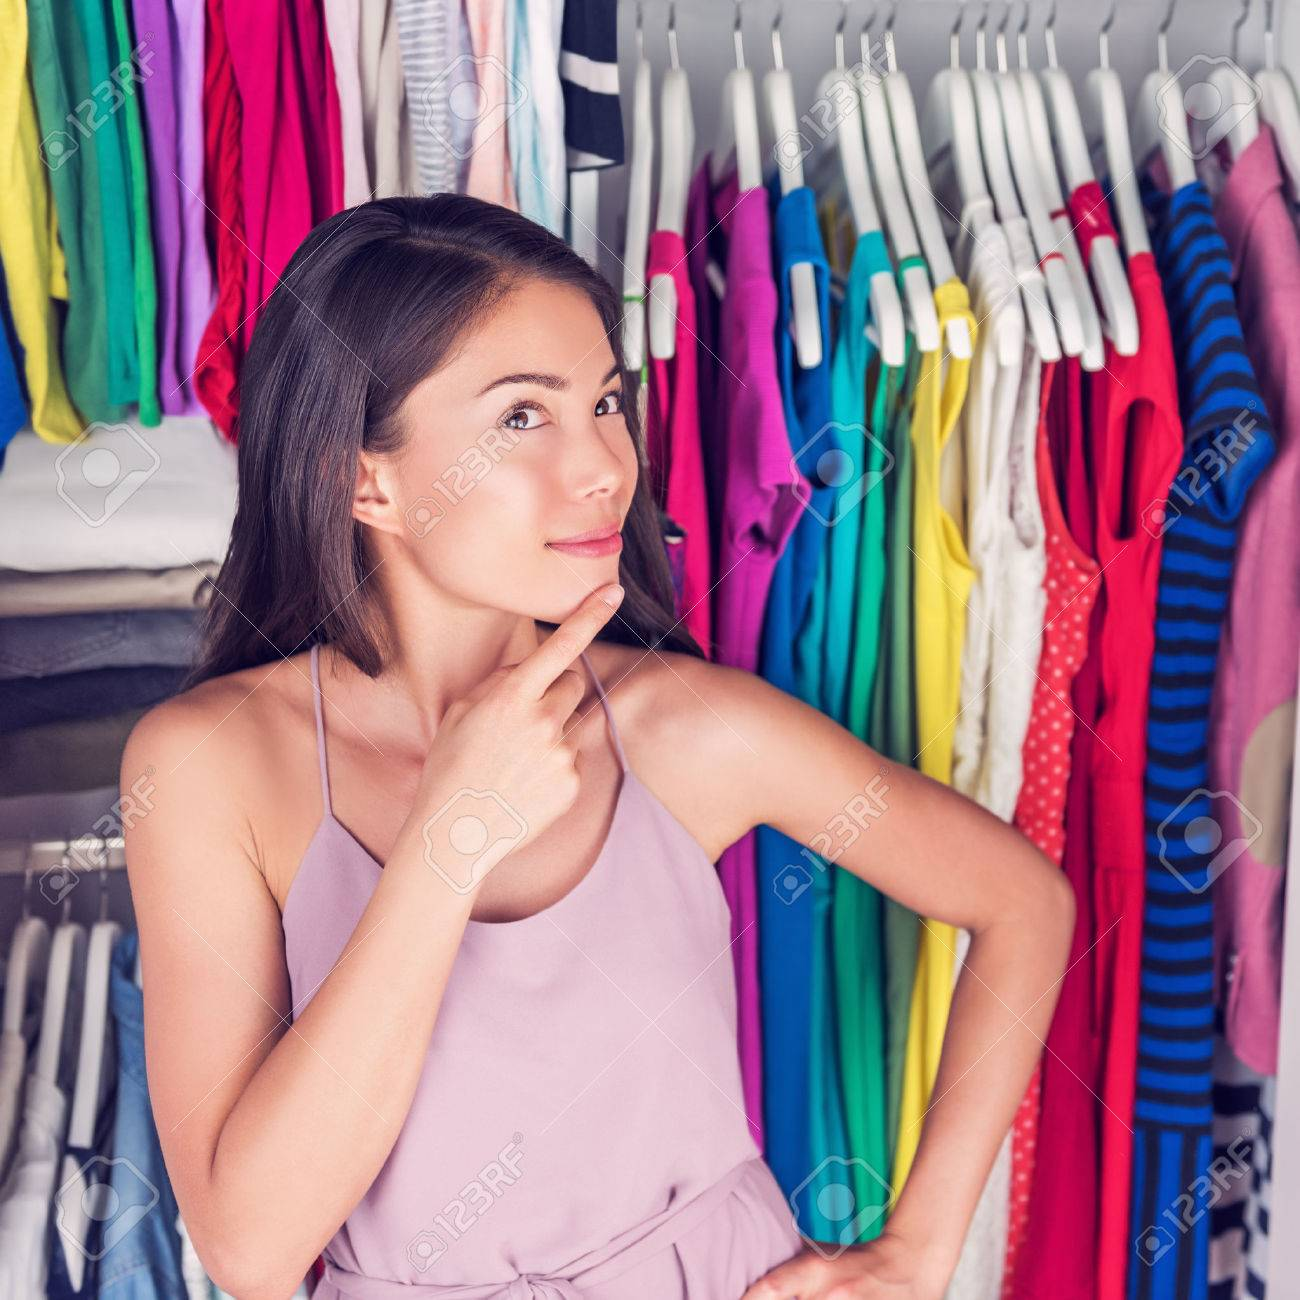 Home Closet Or Store Clothing Rack Changing Room. Woman Choosing Her  Fashion Outfit. Shopping